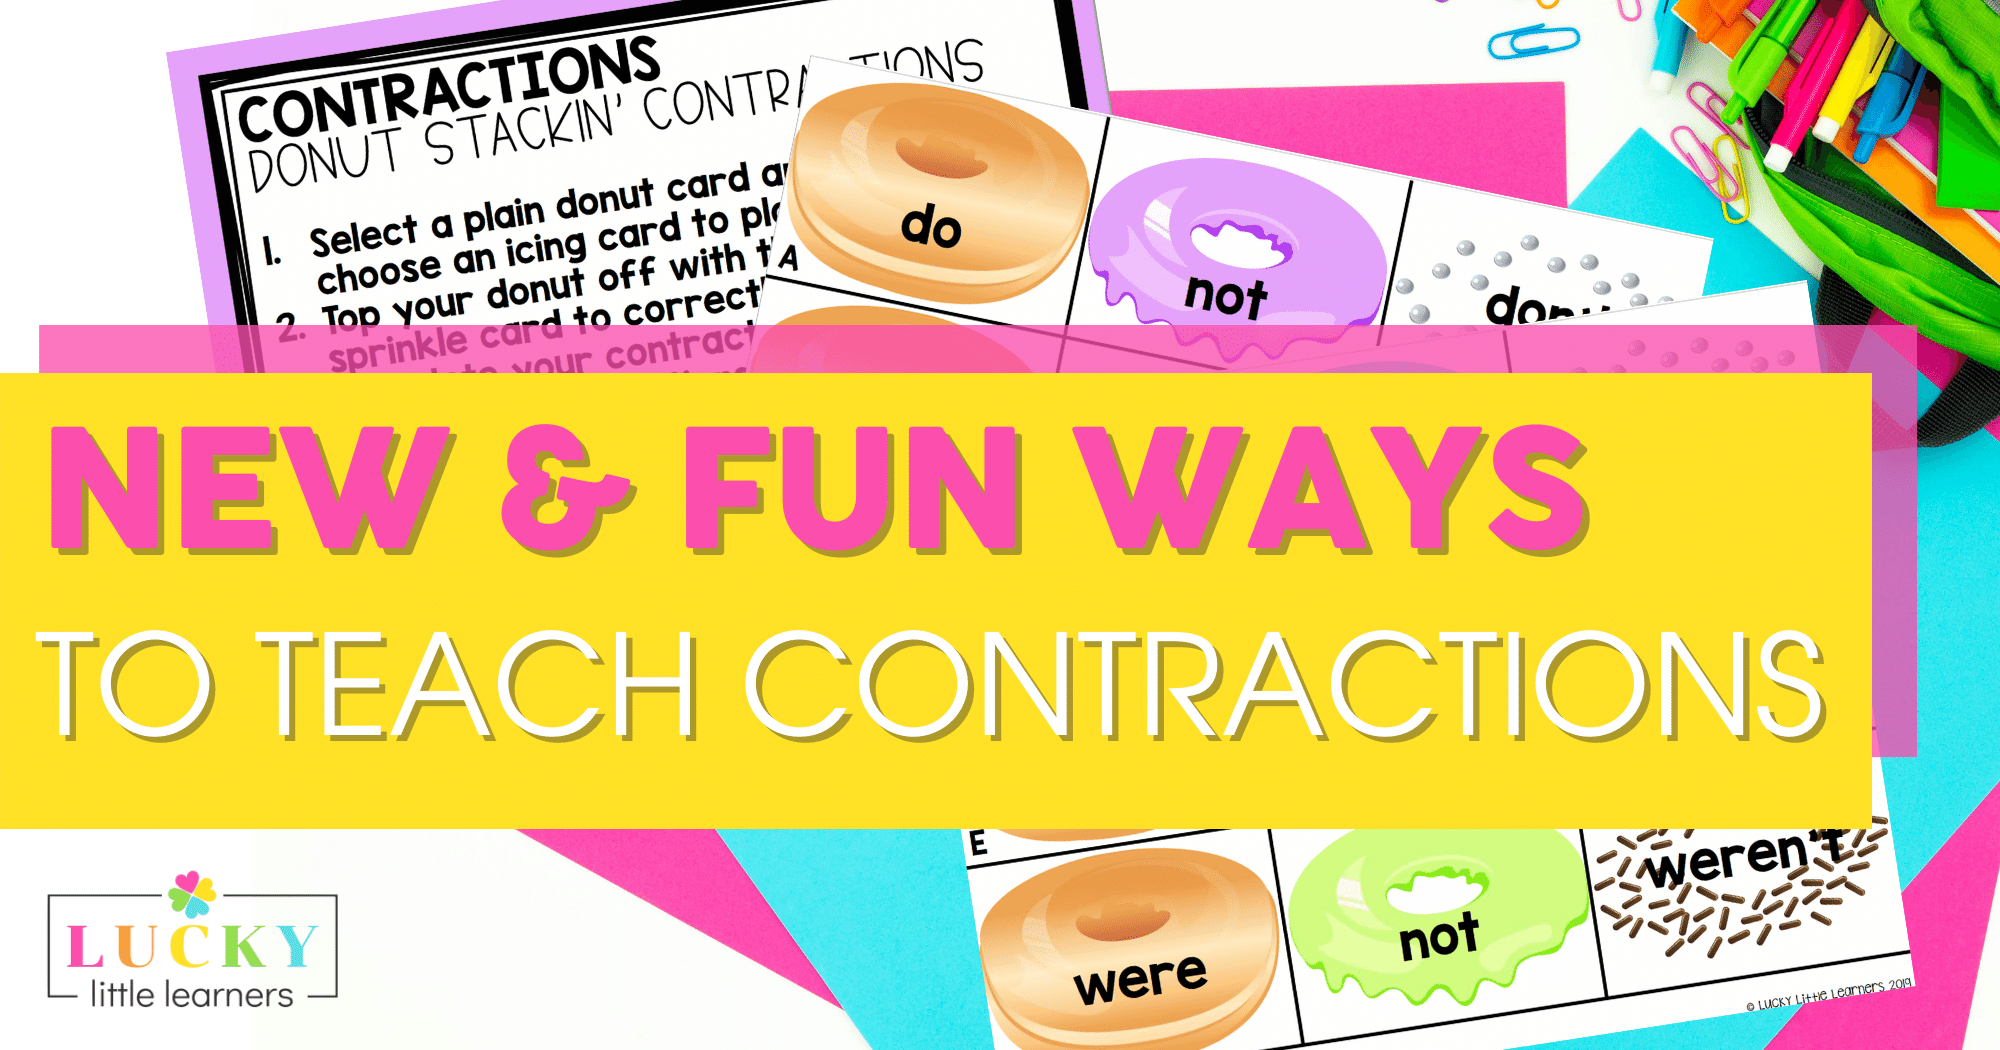 New & Fun Ways to Teach Contractions